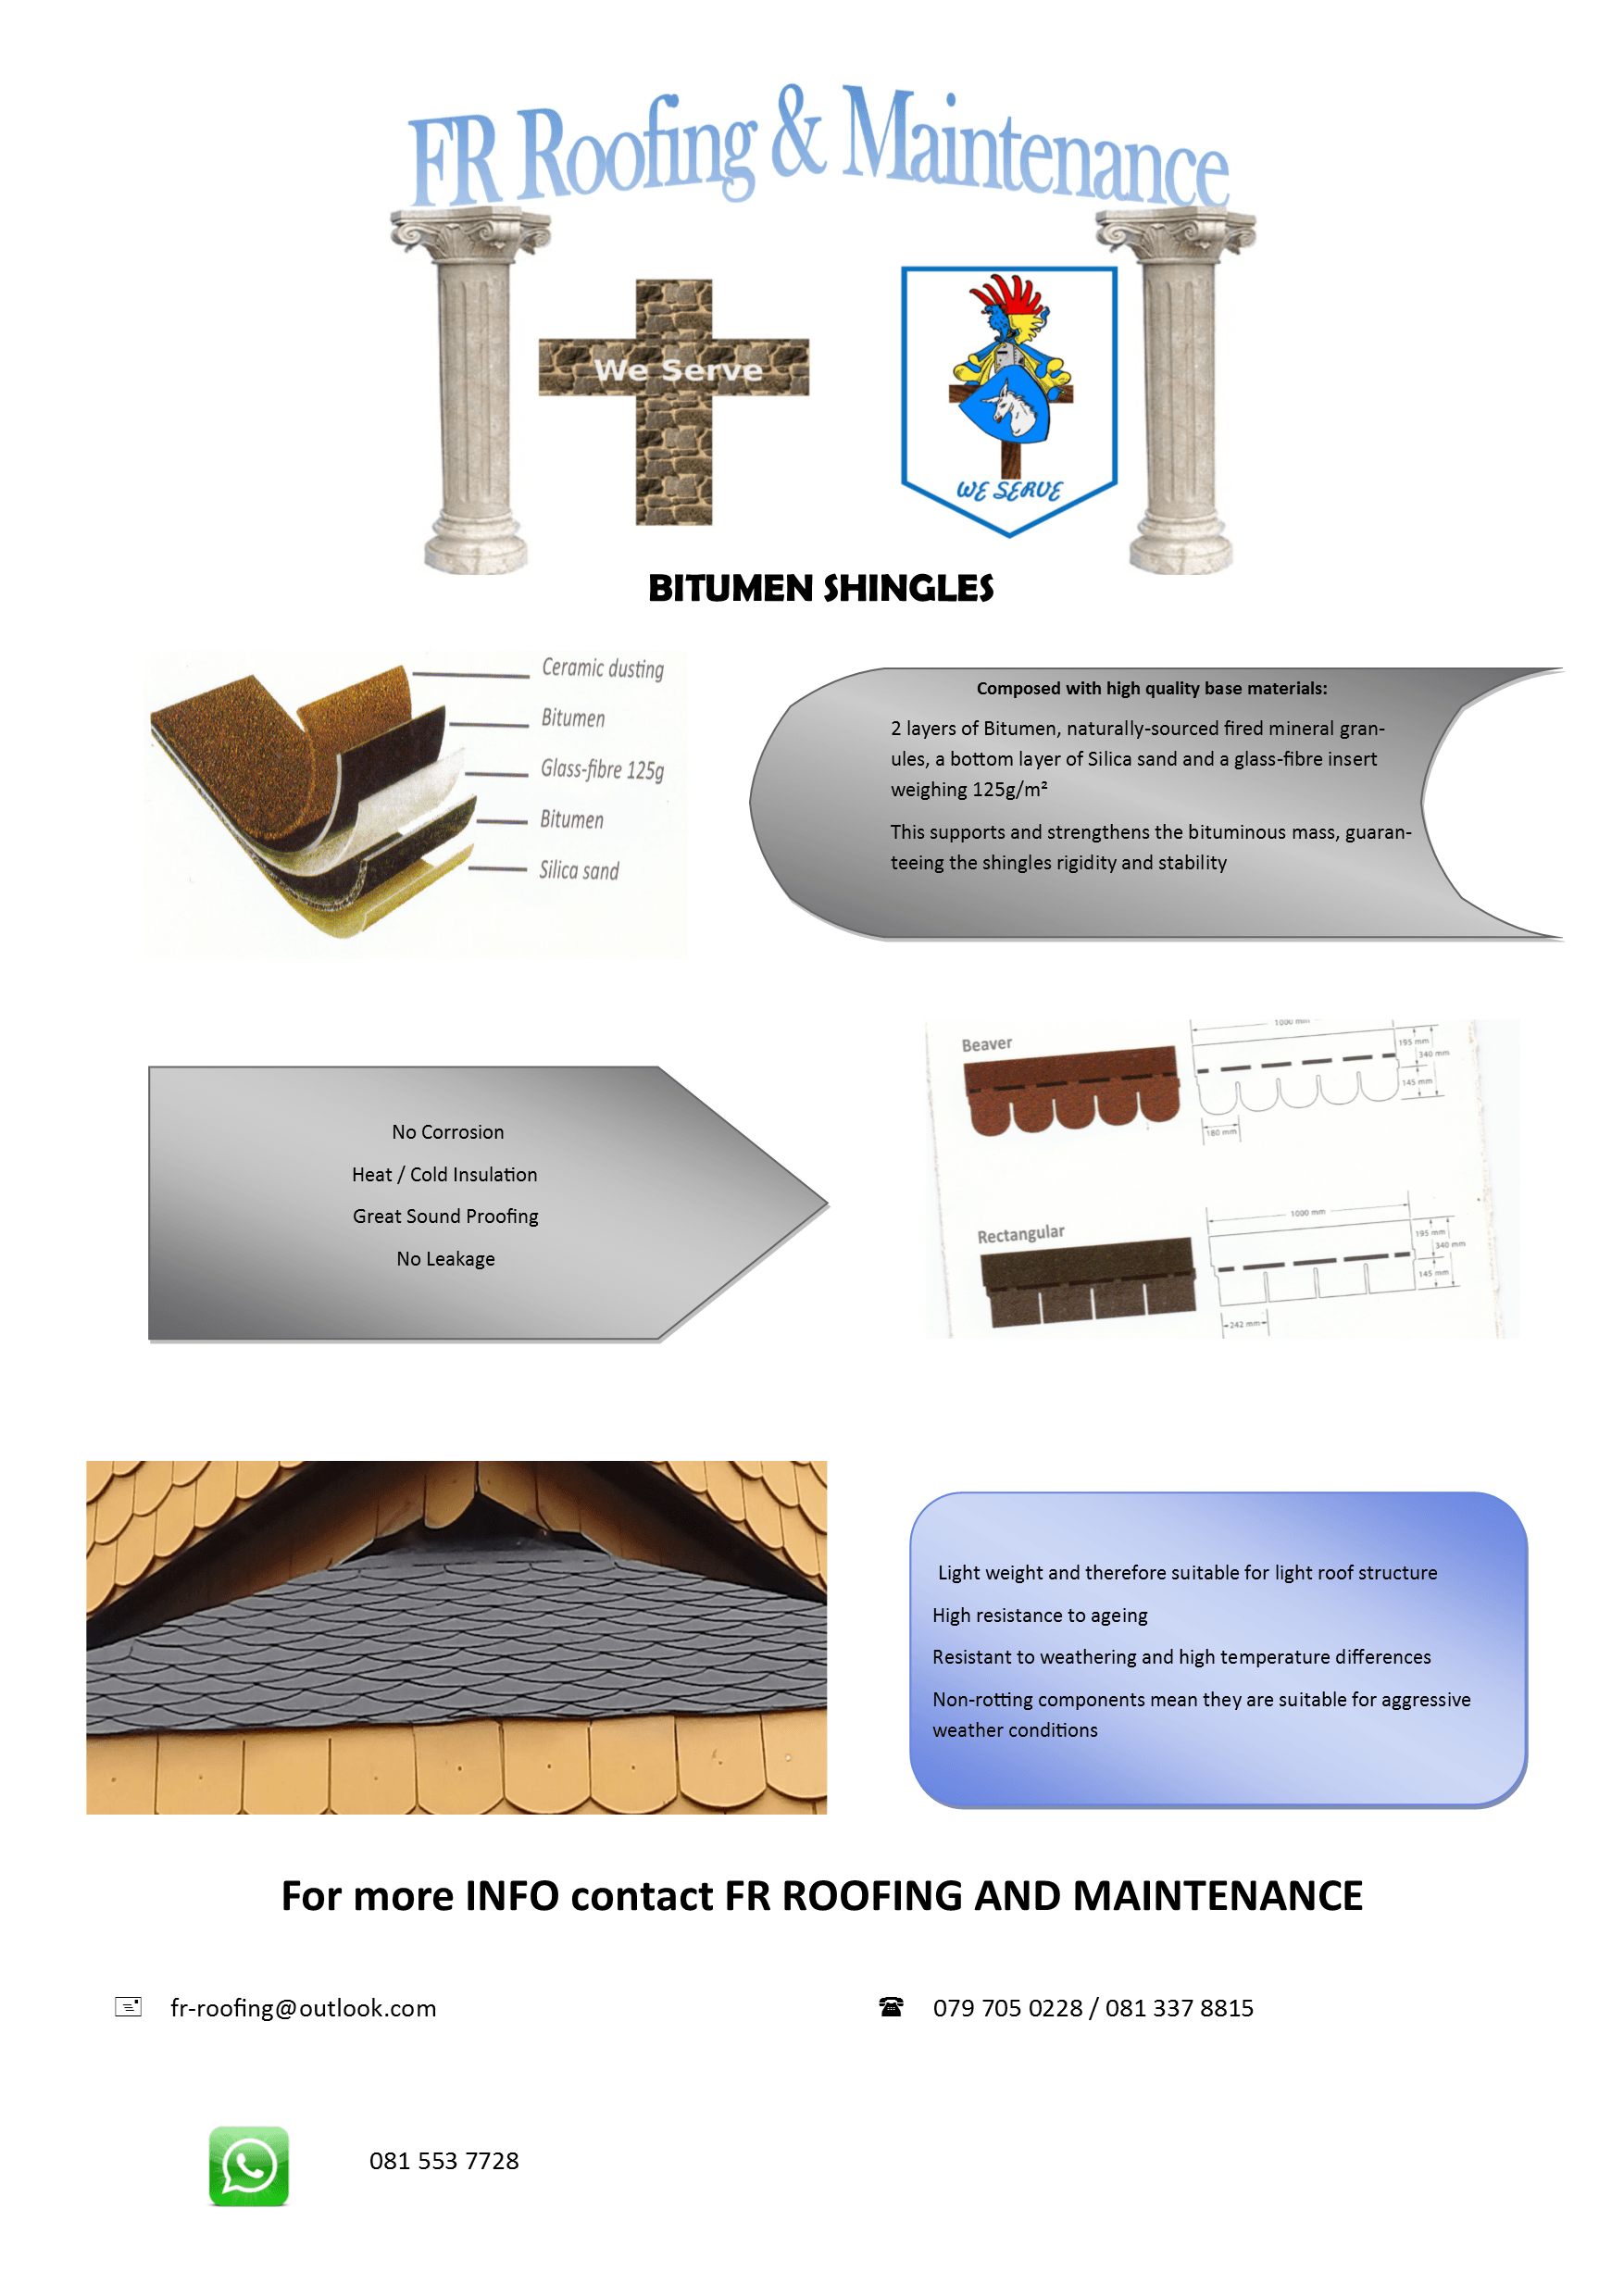 FR Roofing and Maintenance